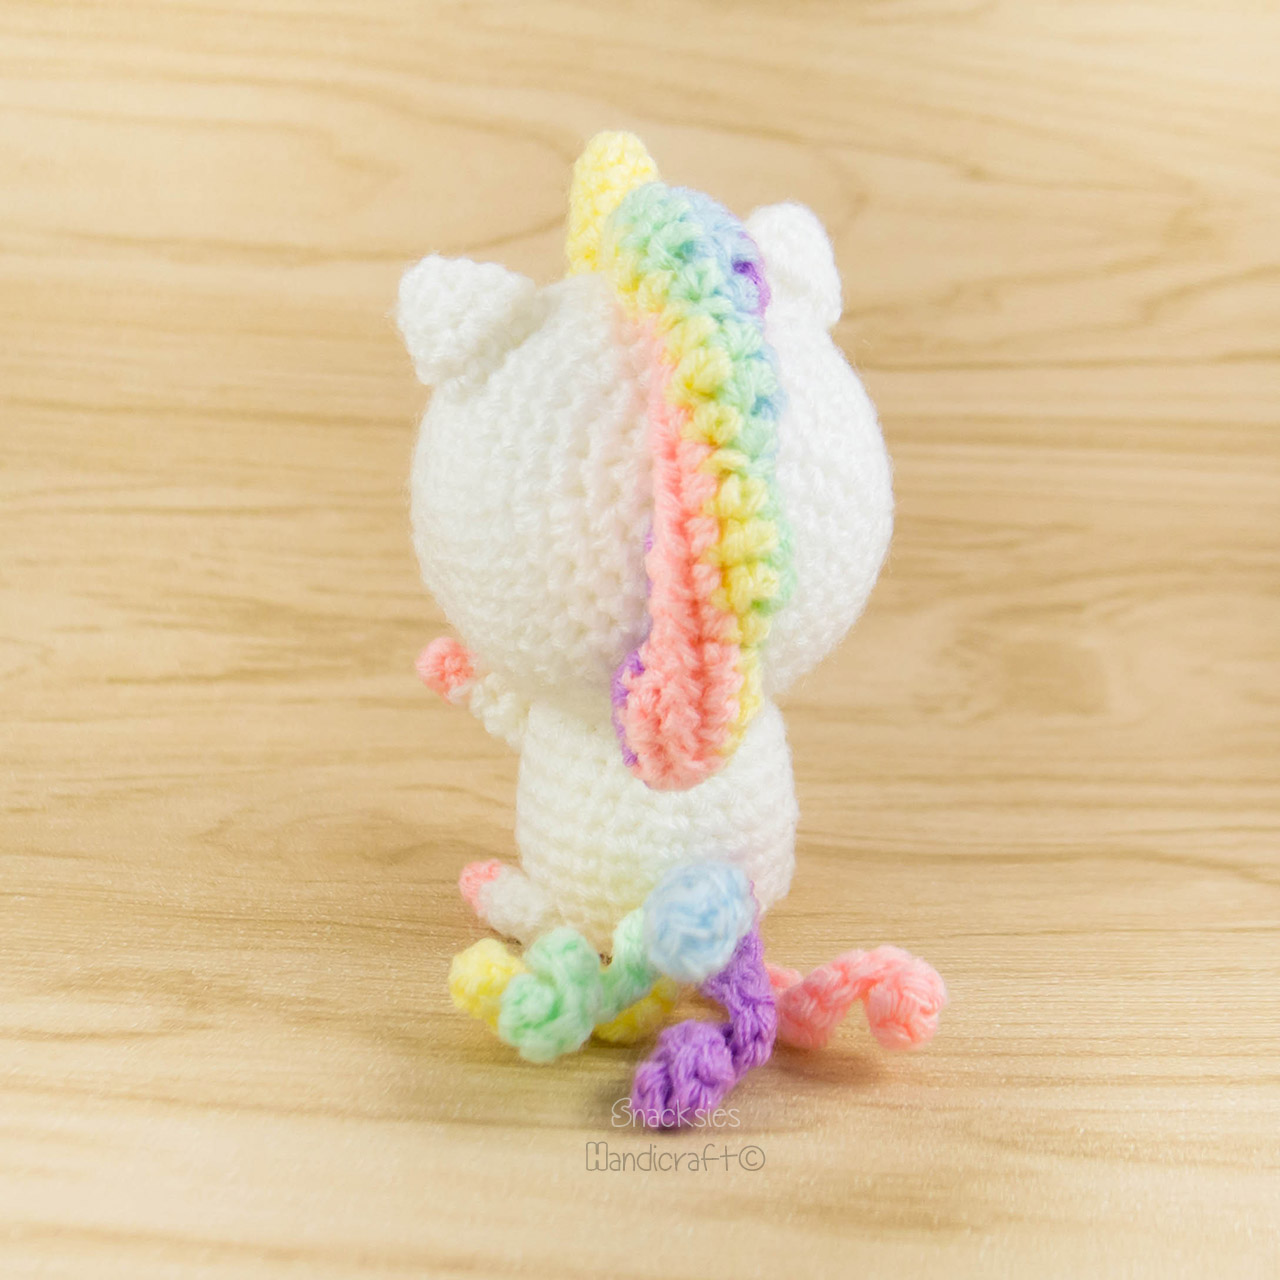 Crochet Baby Unicorn Pattern : Rainbow Unicorn Amigurumi Pattern ~ Snacksies Handicraft ...